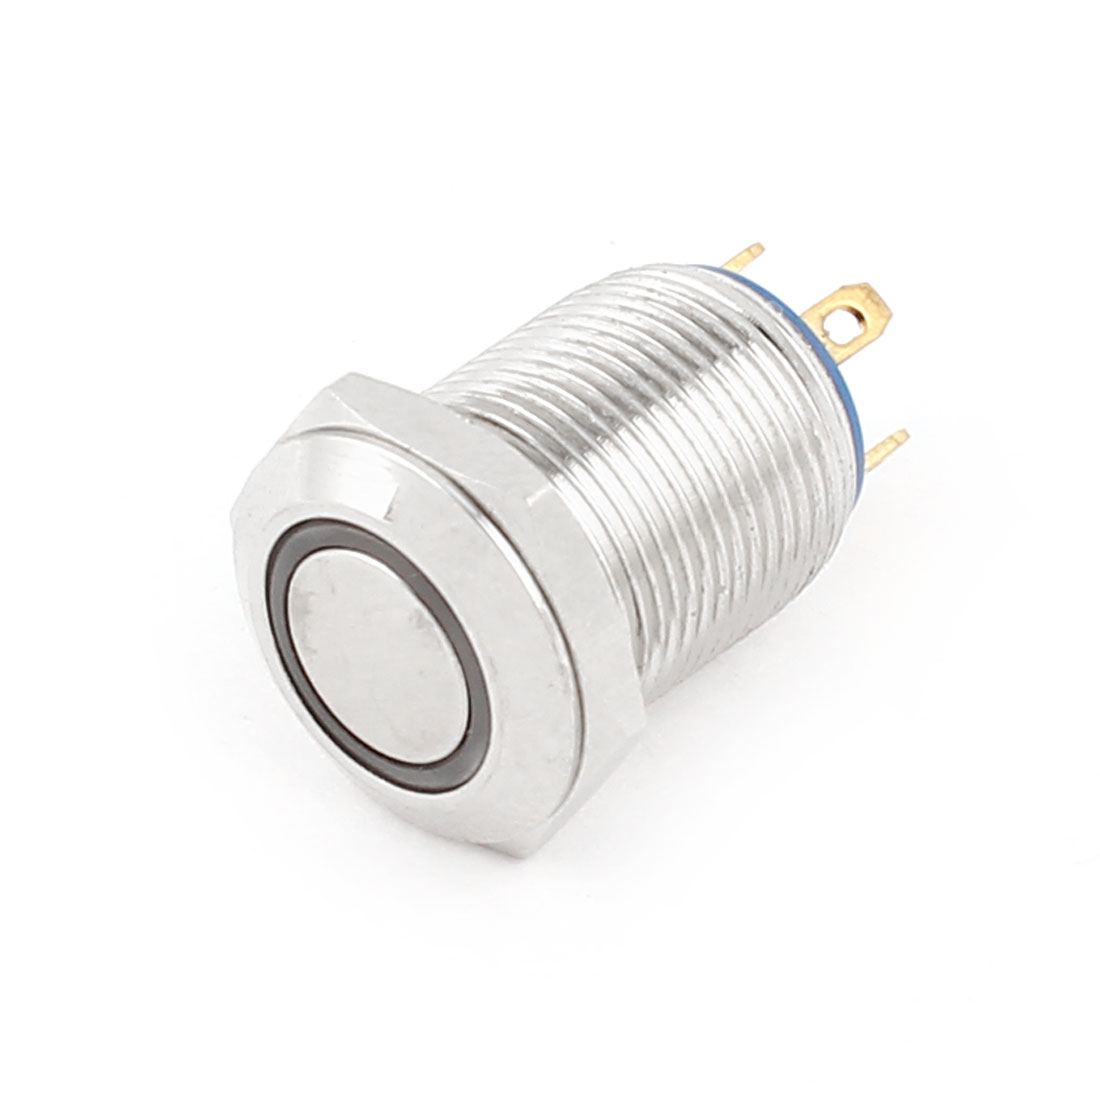 Silver Tone Case 12mm Angel Eye Yellow LED DC3V SPST Momentary 4 Pins Push Button Metal Switch AC250V 2A